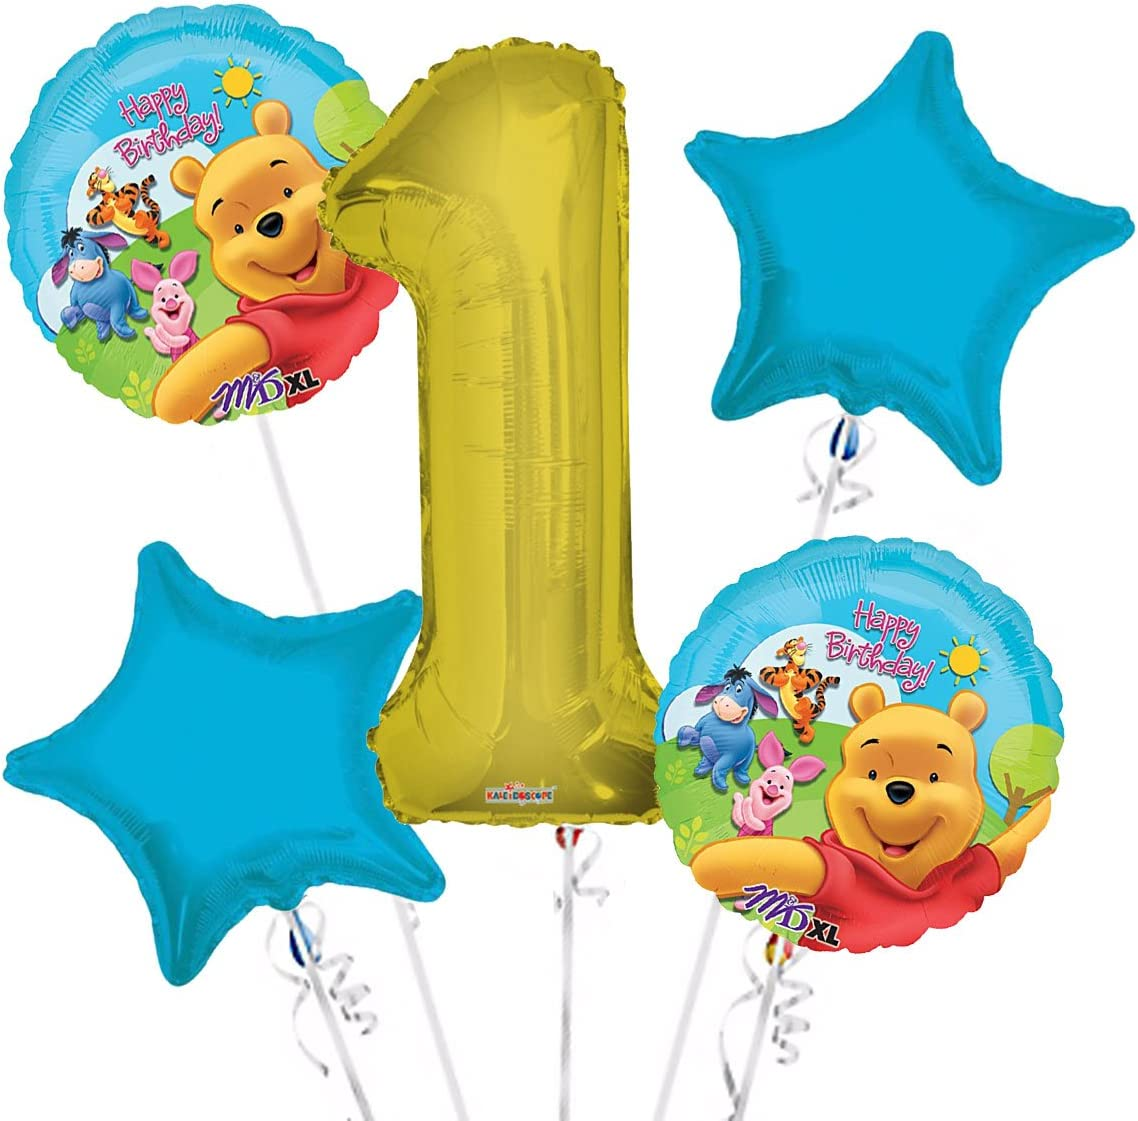 Winnie the Pooh Balloon Bouquet 1st Birthday 5 pcs Party Supplies Viva Party